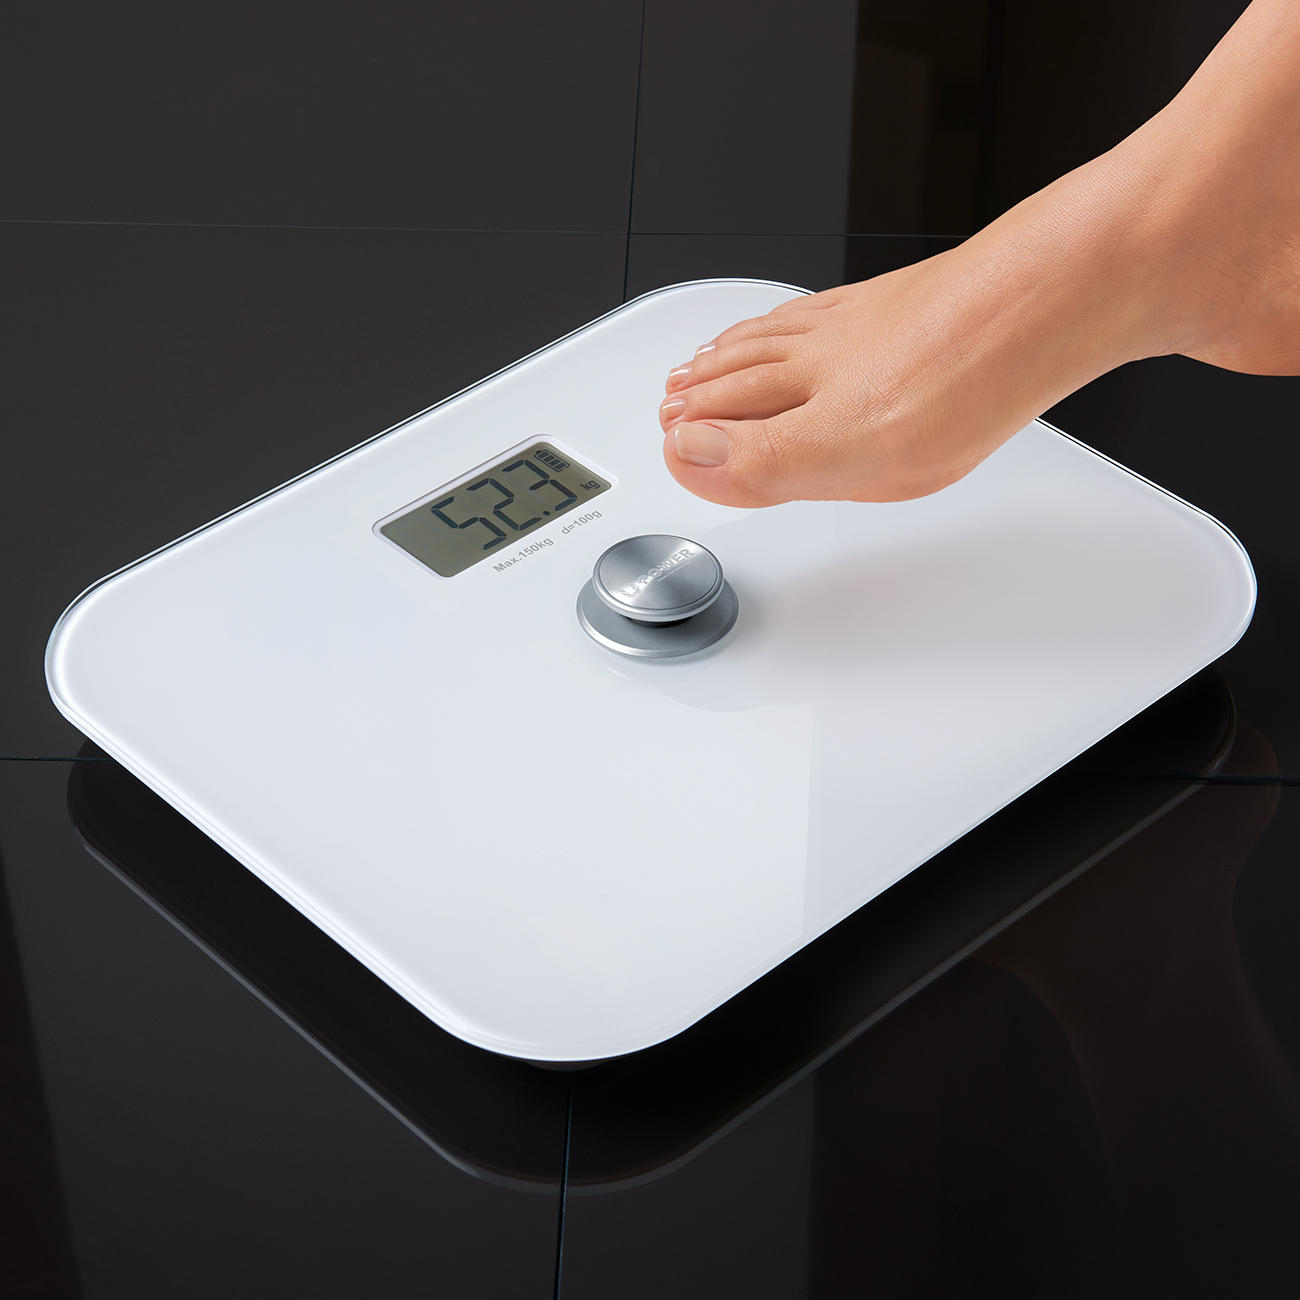 Buy Digital Bathroom Scale without battery online